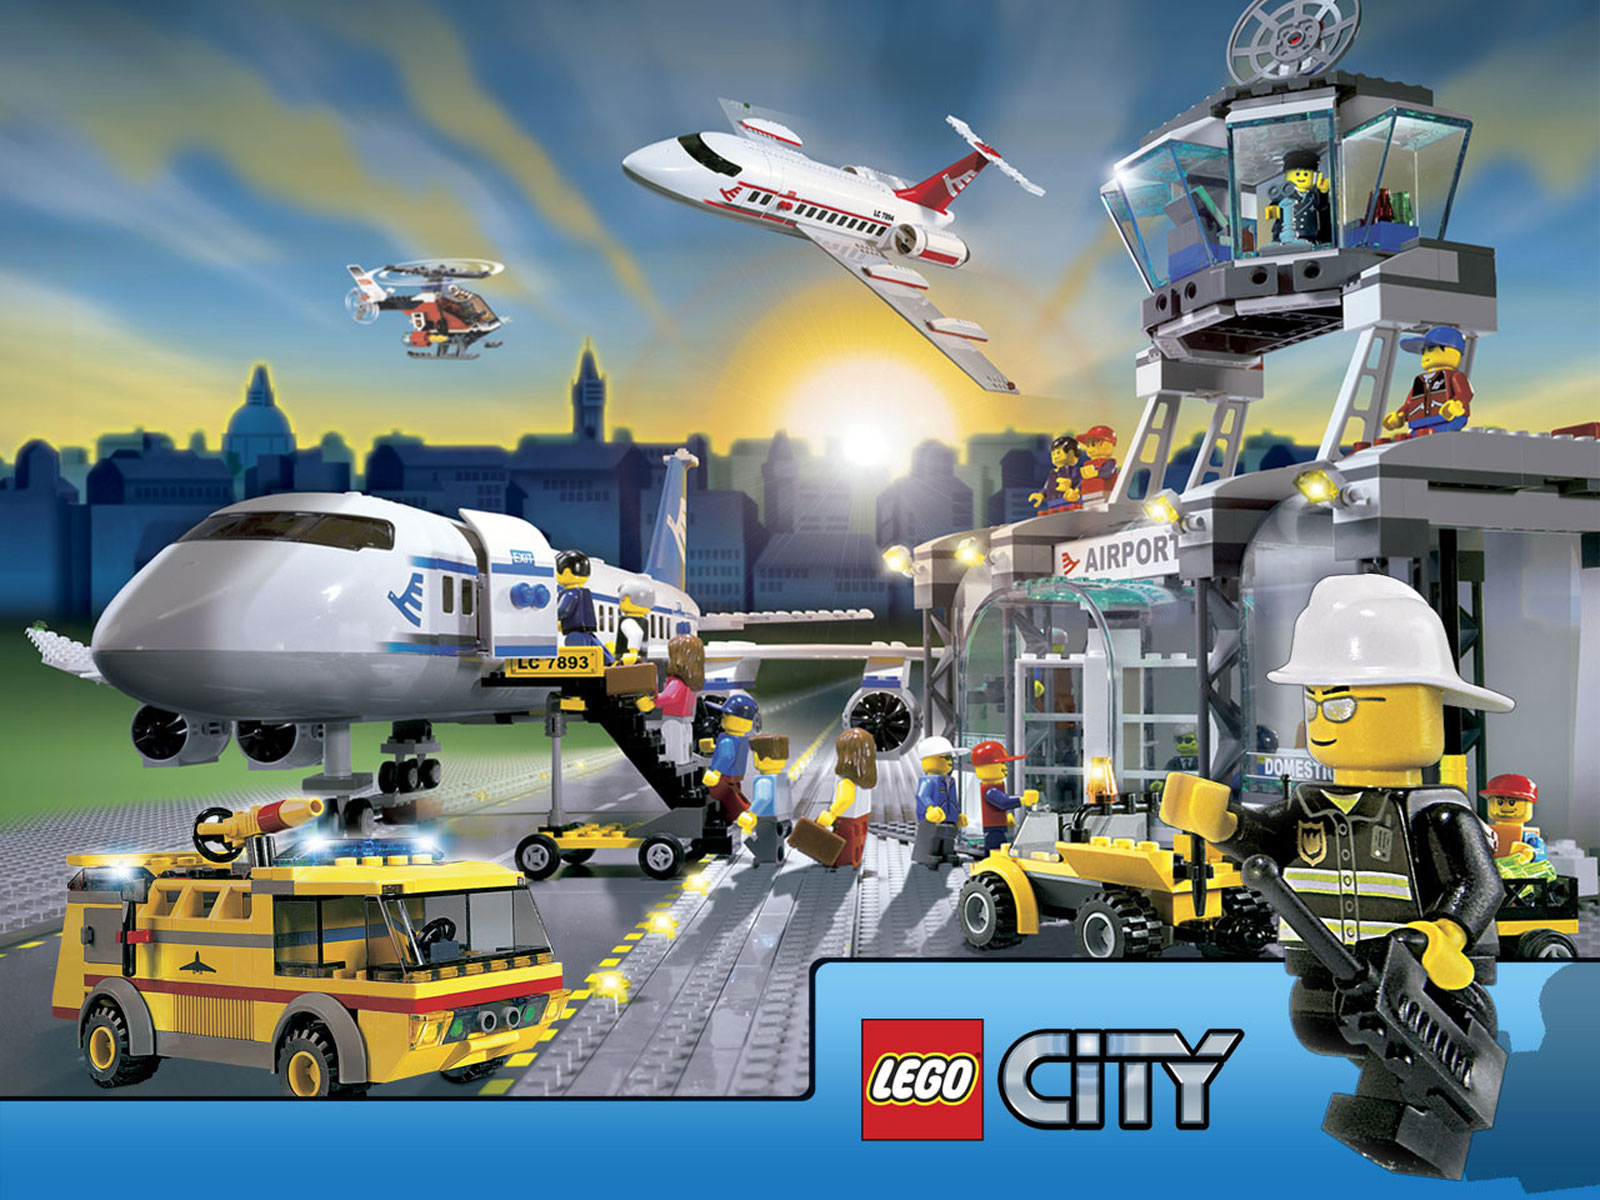 Lego City Wallpapers